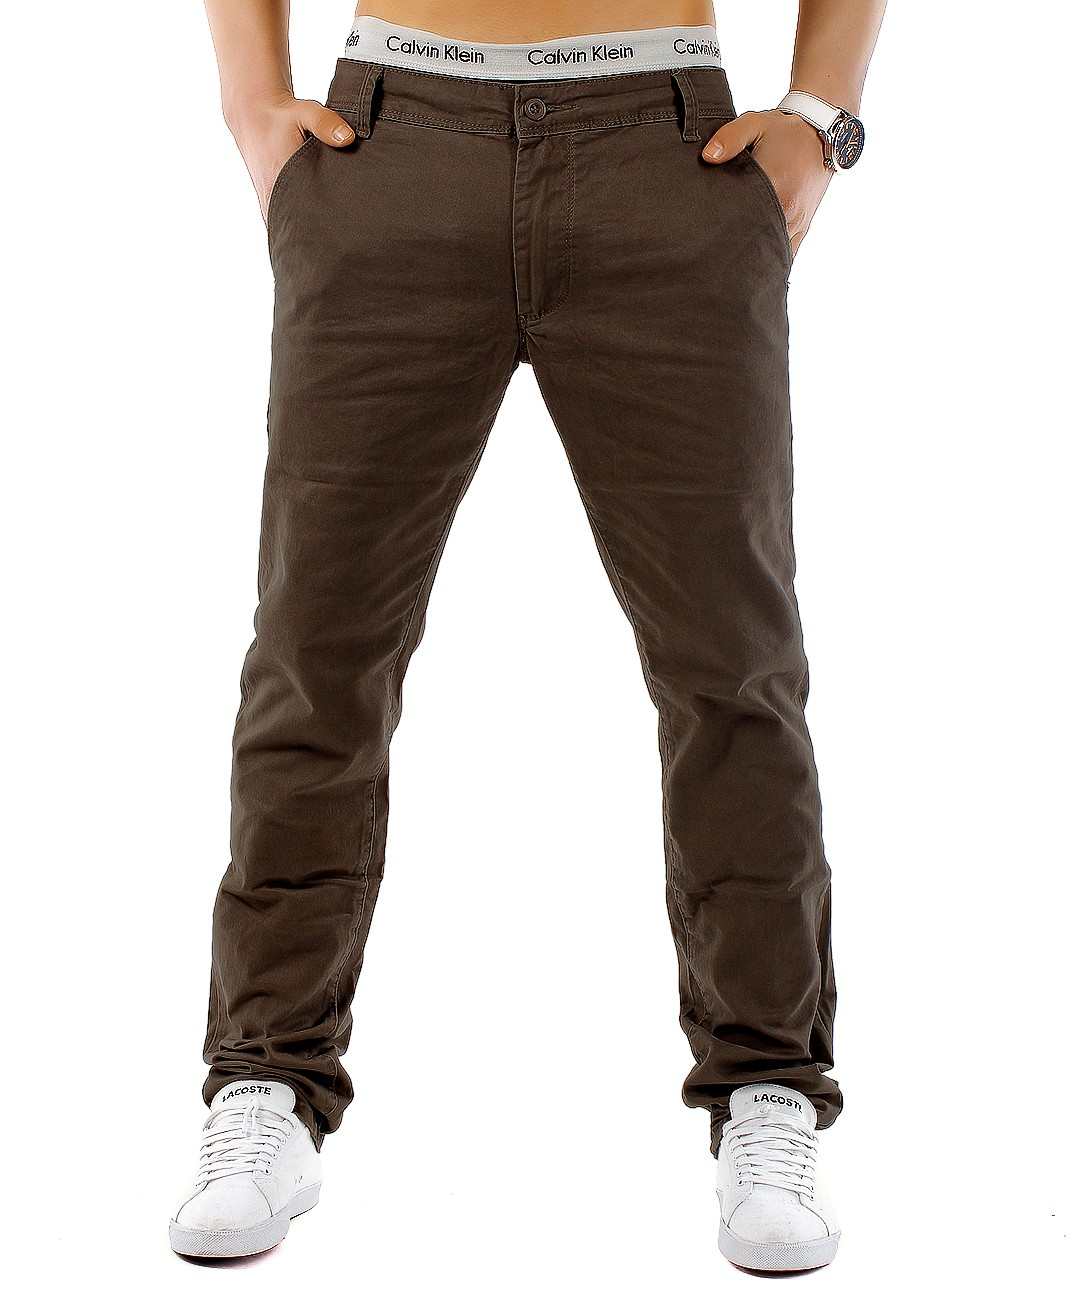 CHINO Trendstr Stil Hose Regular Fit Chinohose Jeans Trousers Classic Plus